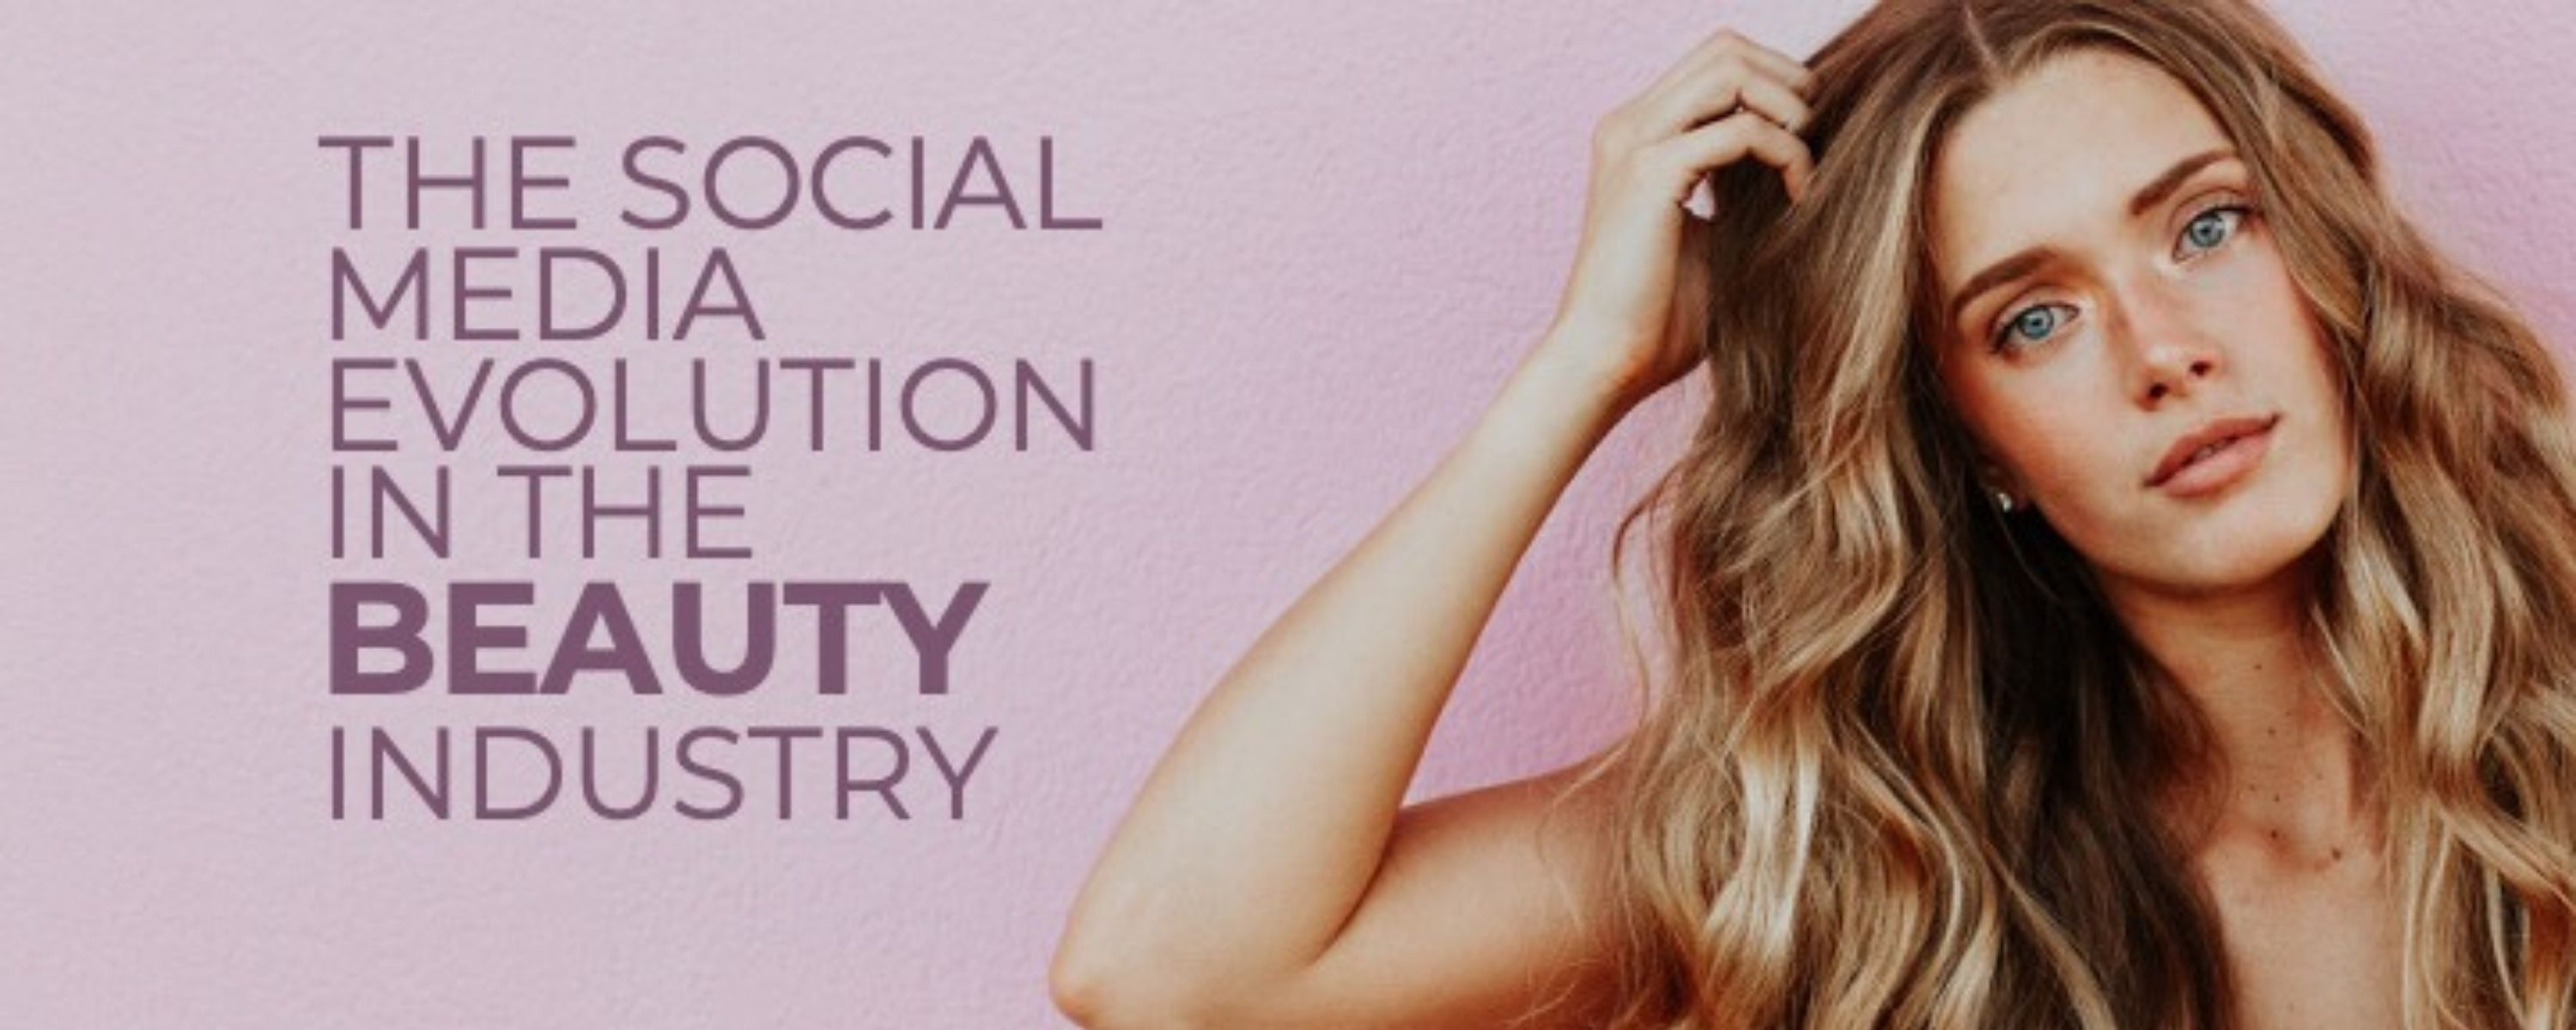 Beauty Industry Social Media